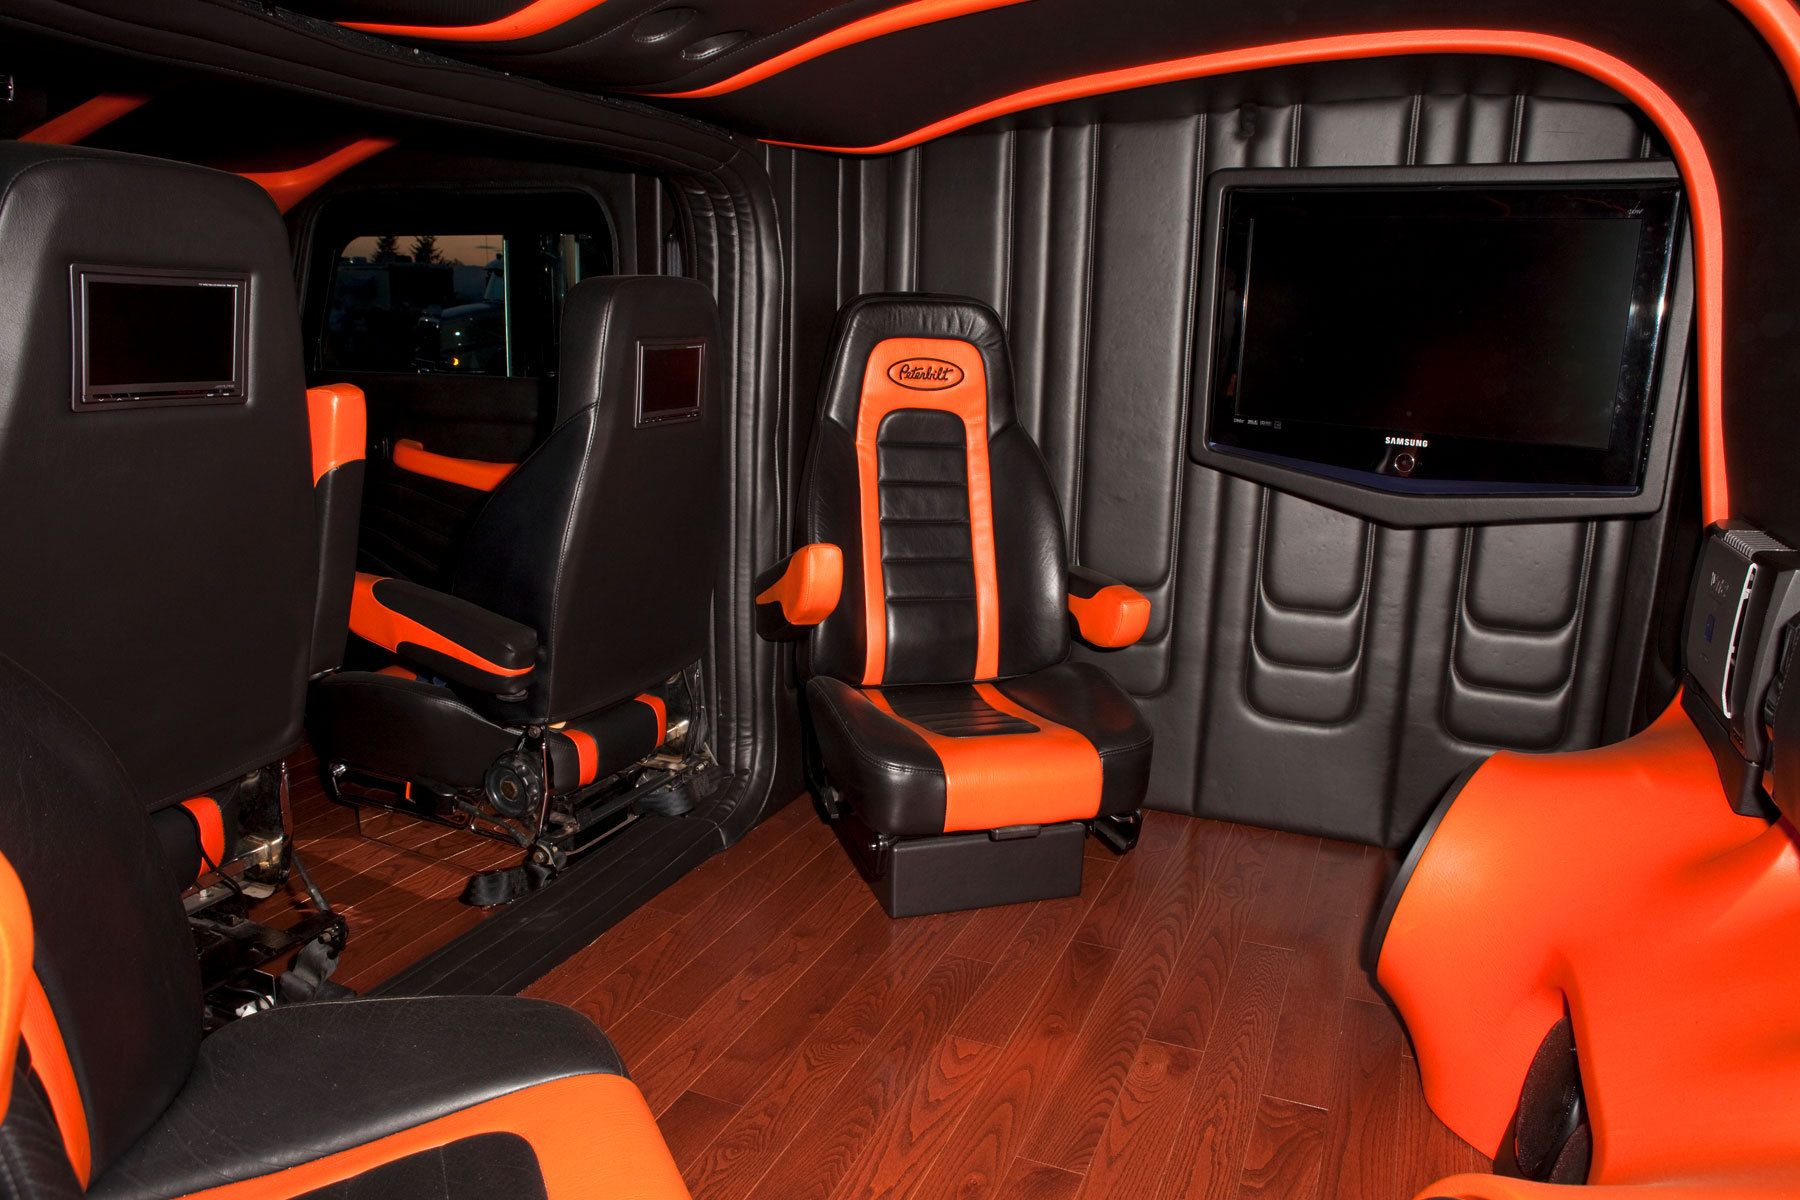 Awesome Orange Game Room In Tiny Space Camper Big Rigs Pinterest Truck Interior Used